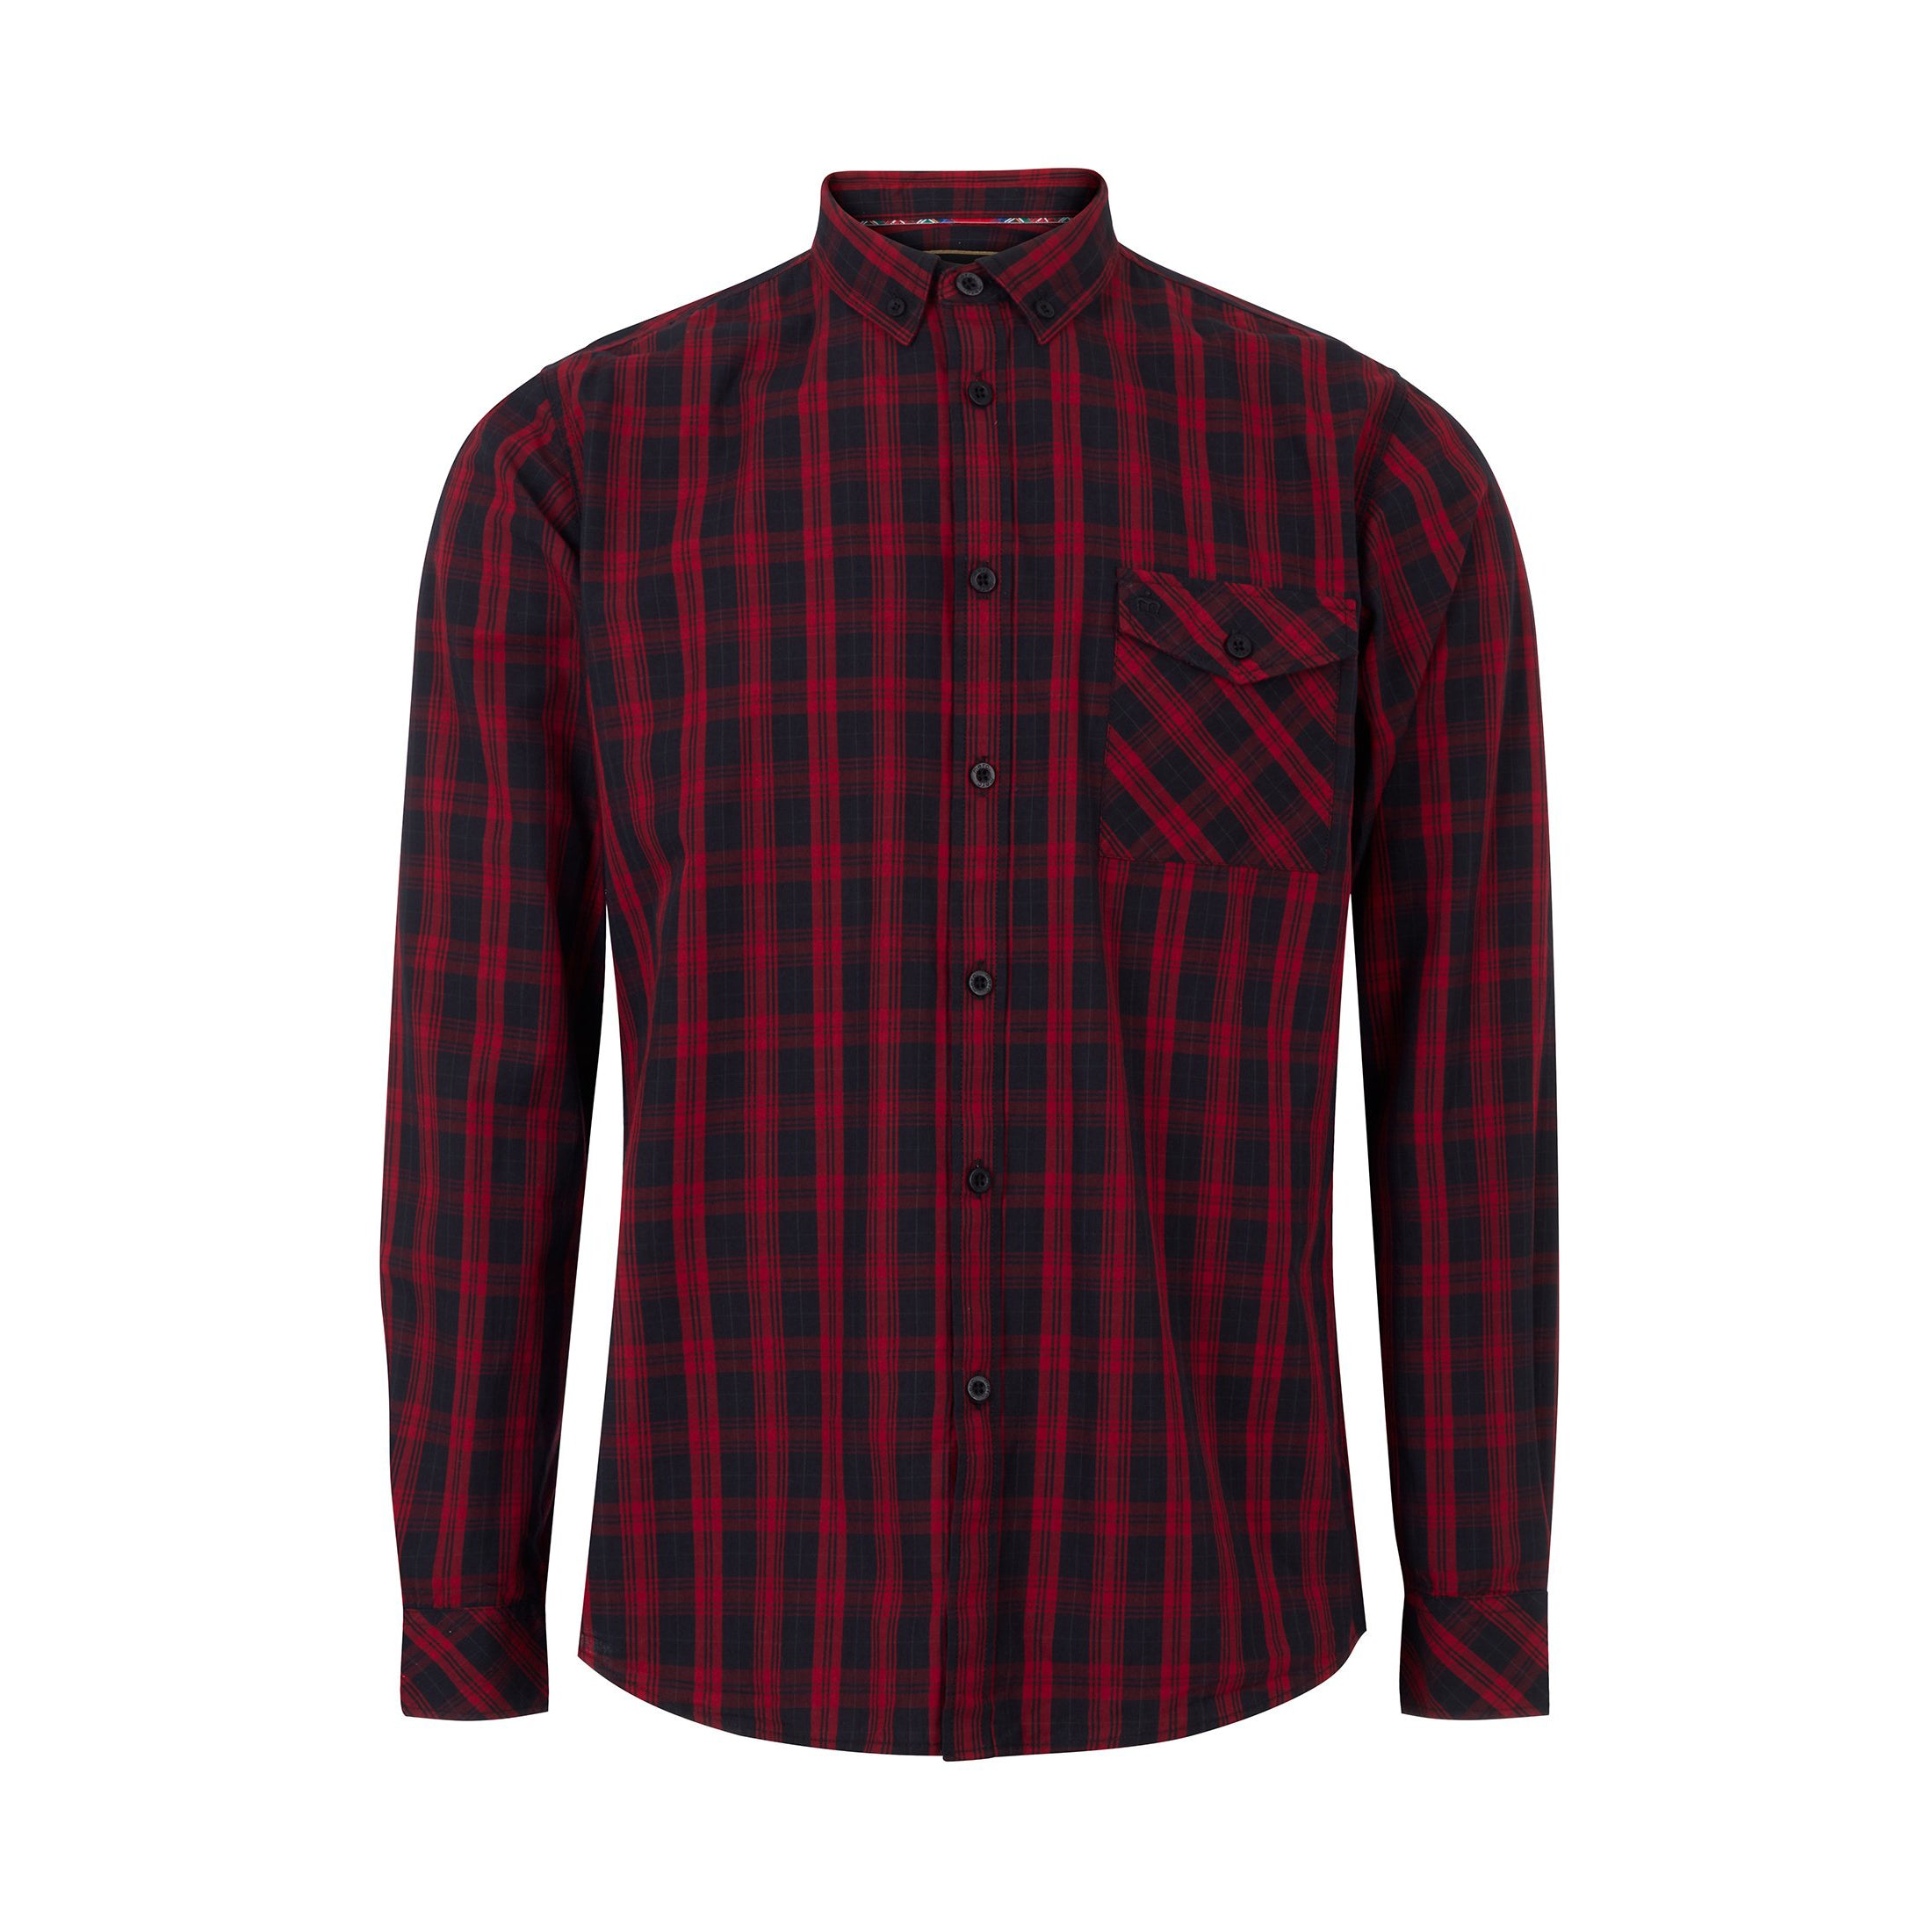 Brixton Check Shirt - Merc